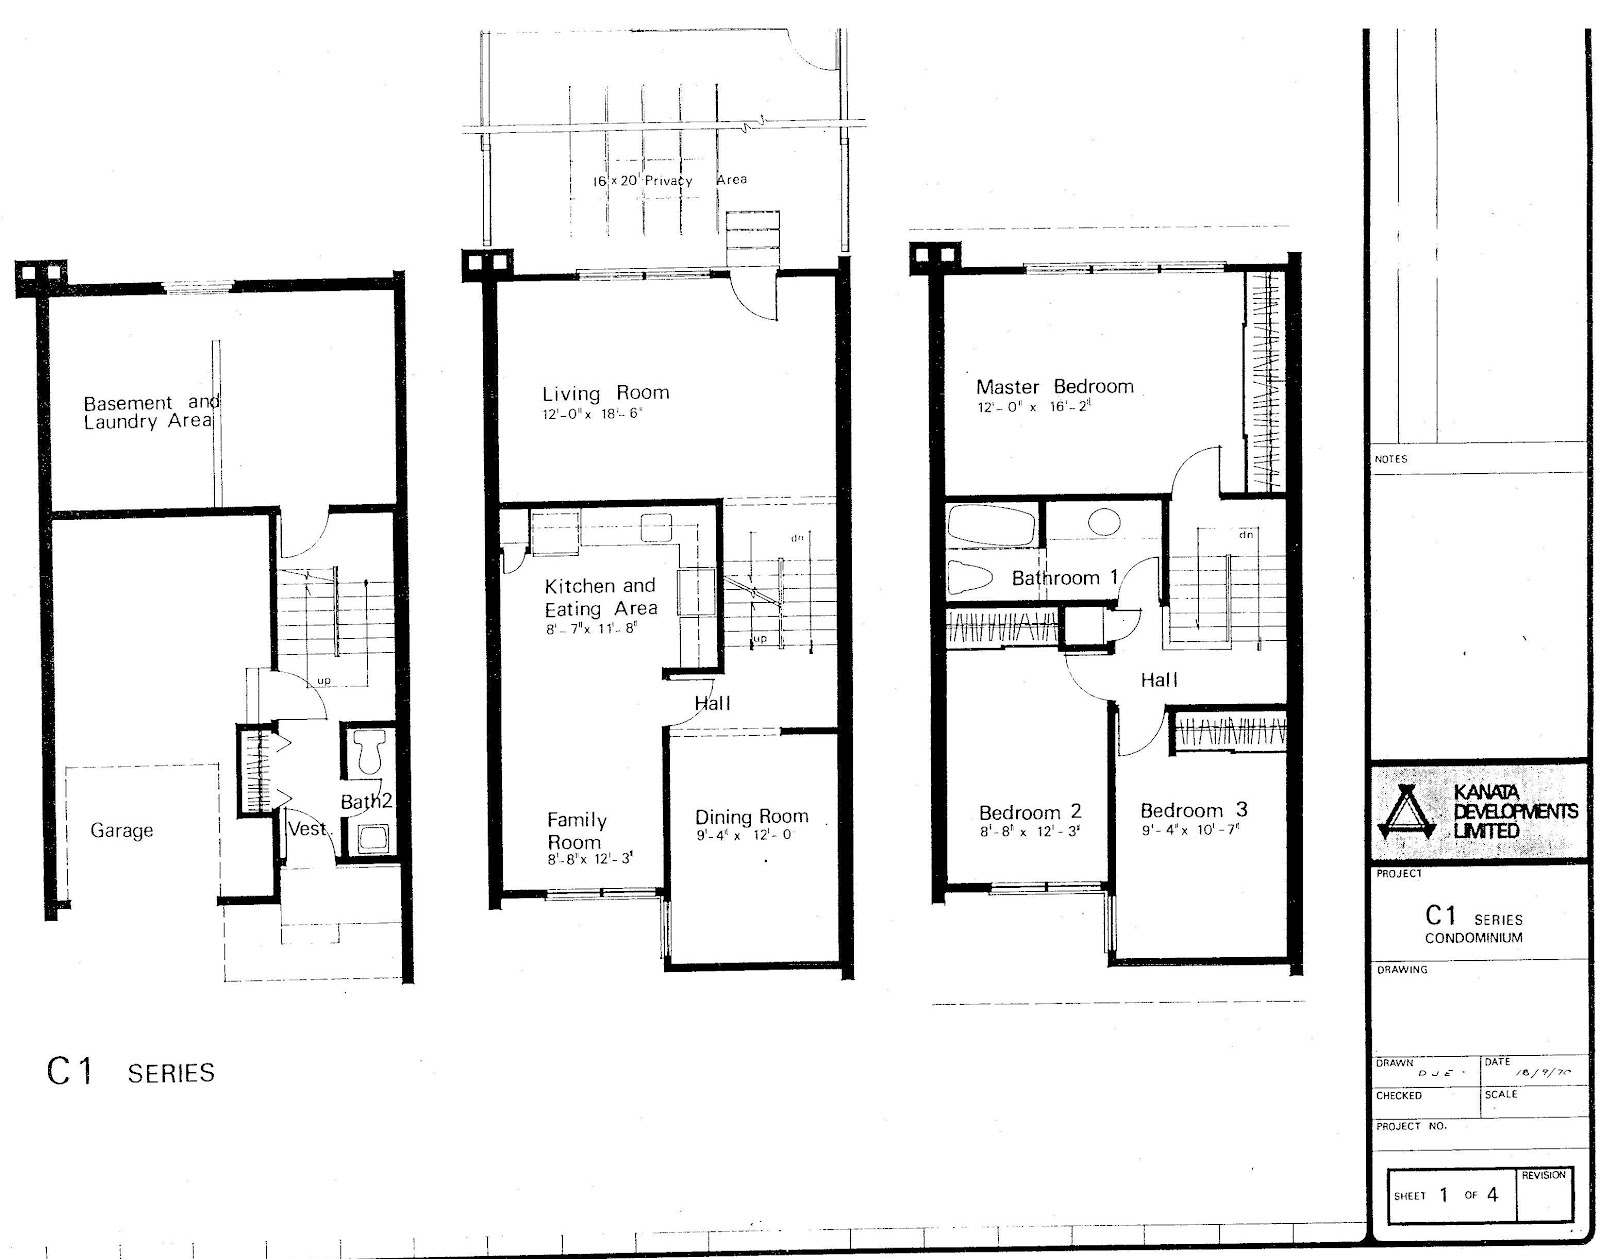 Simple 3 Story Townhome Plans Placement Home Plans